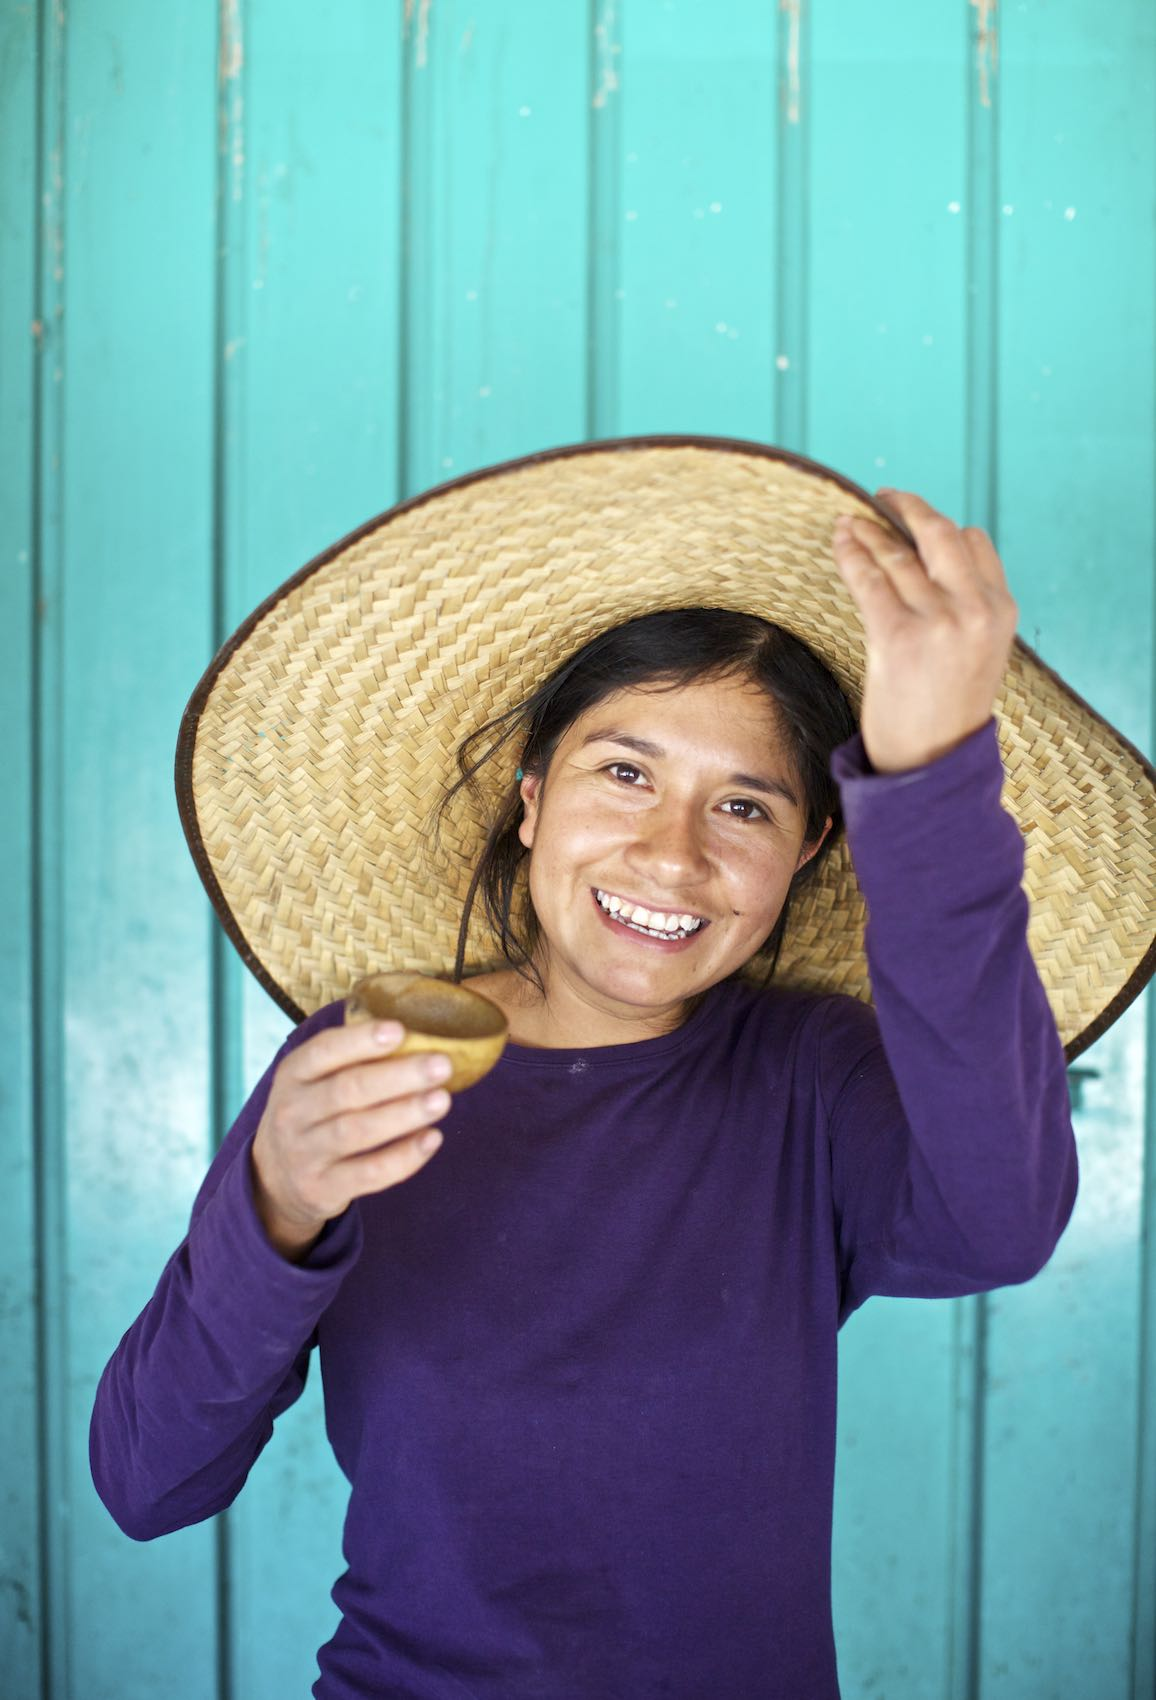 Jody Horton Photography - Young woman in straw hat and purple shirt tasting mezcal.